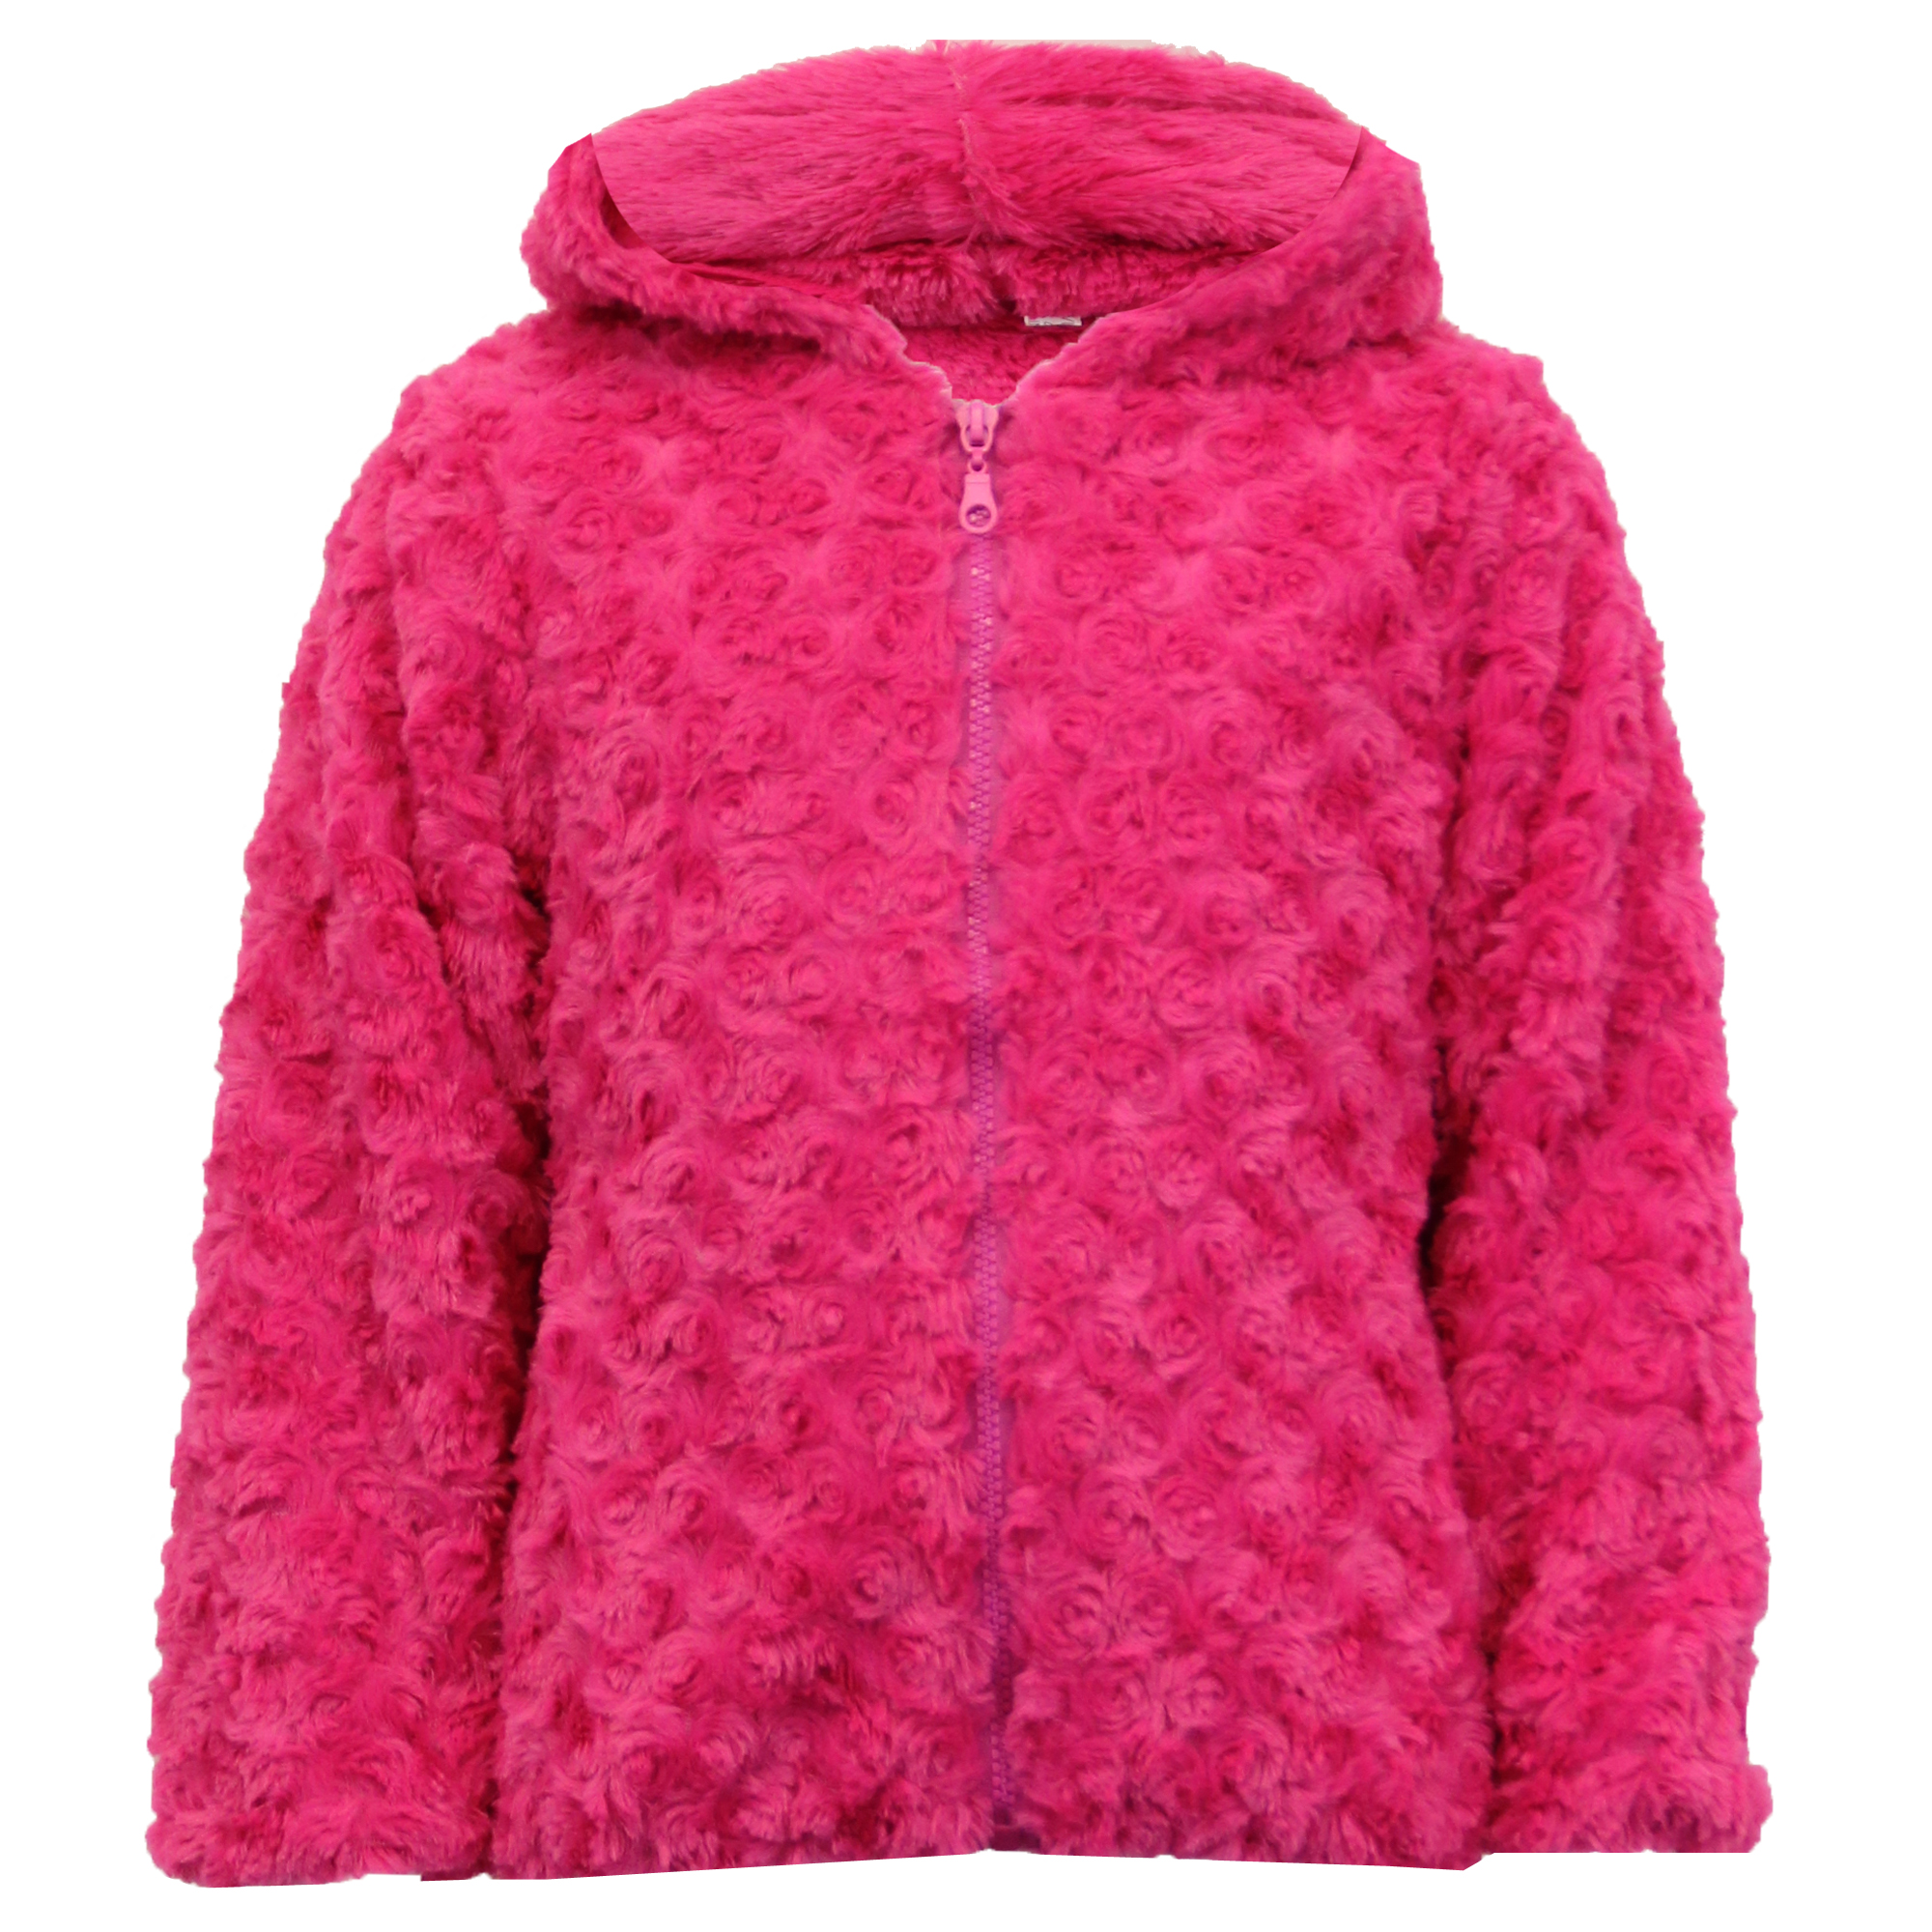 Matalan's range of girls coats & jackets are cosy & comfortable to keep her snug all season. Free Click & Collect delivery available! Girls Collarless Faux Fur Jacket (Newbornmths) £ So why not weather-proof the kids and prepare for every eventuality with a cosy padded jacket or practical rain mac to keep them warm and dry? We.